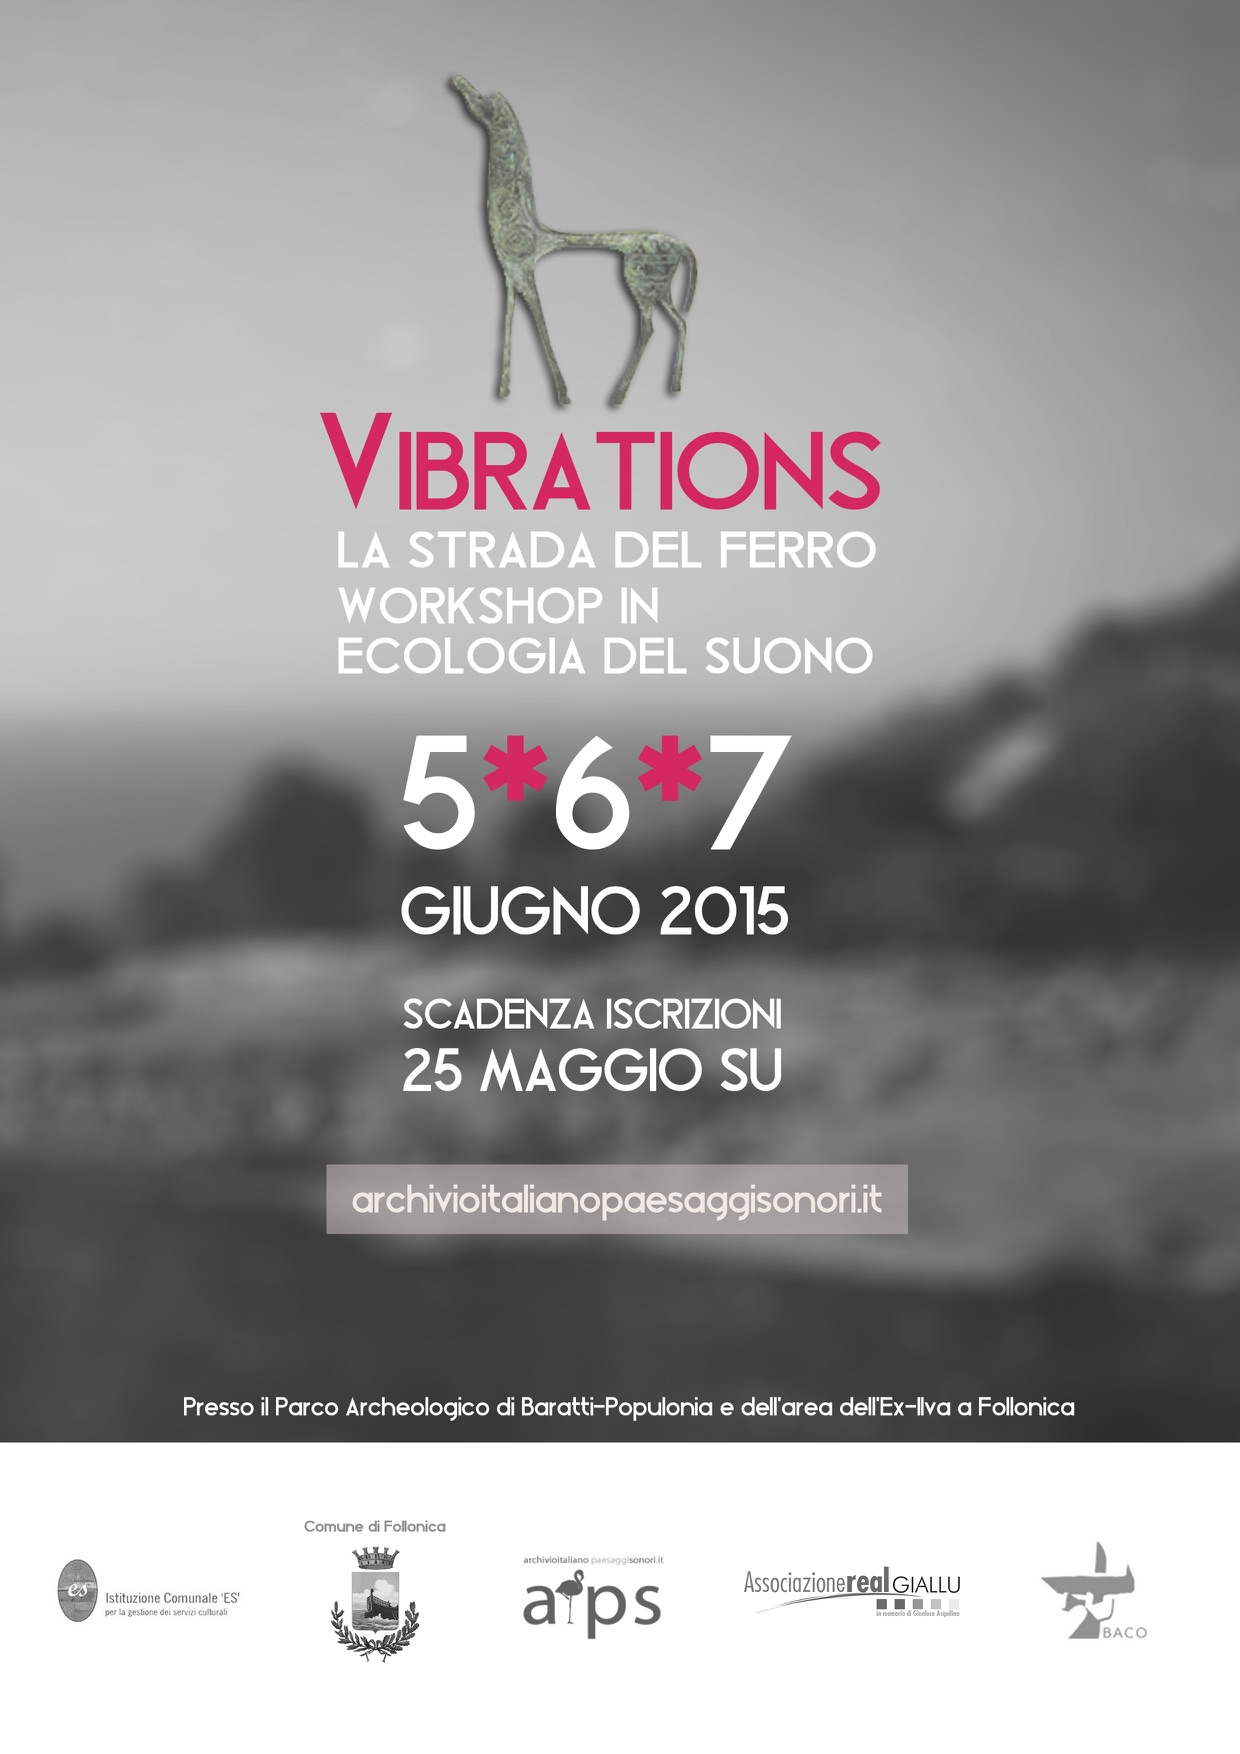 locandina vibrations workshop follonica